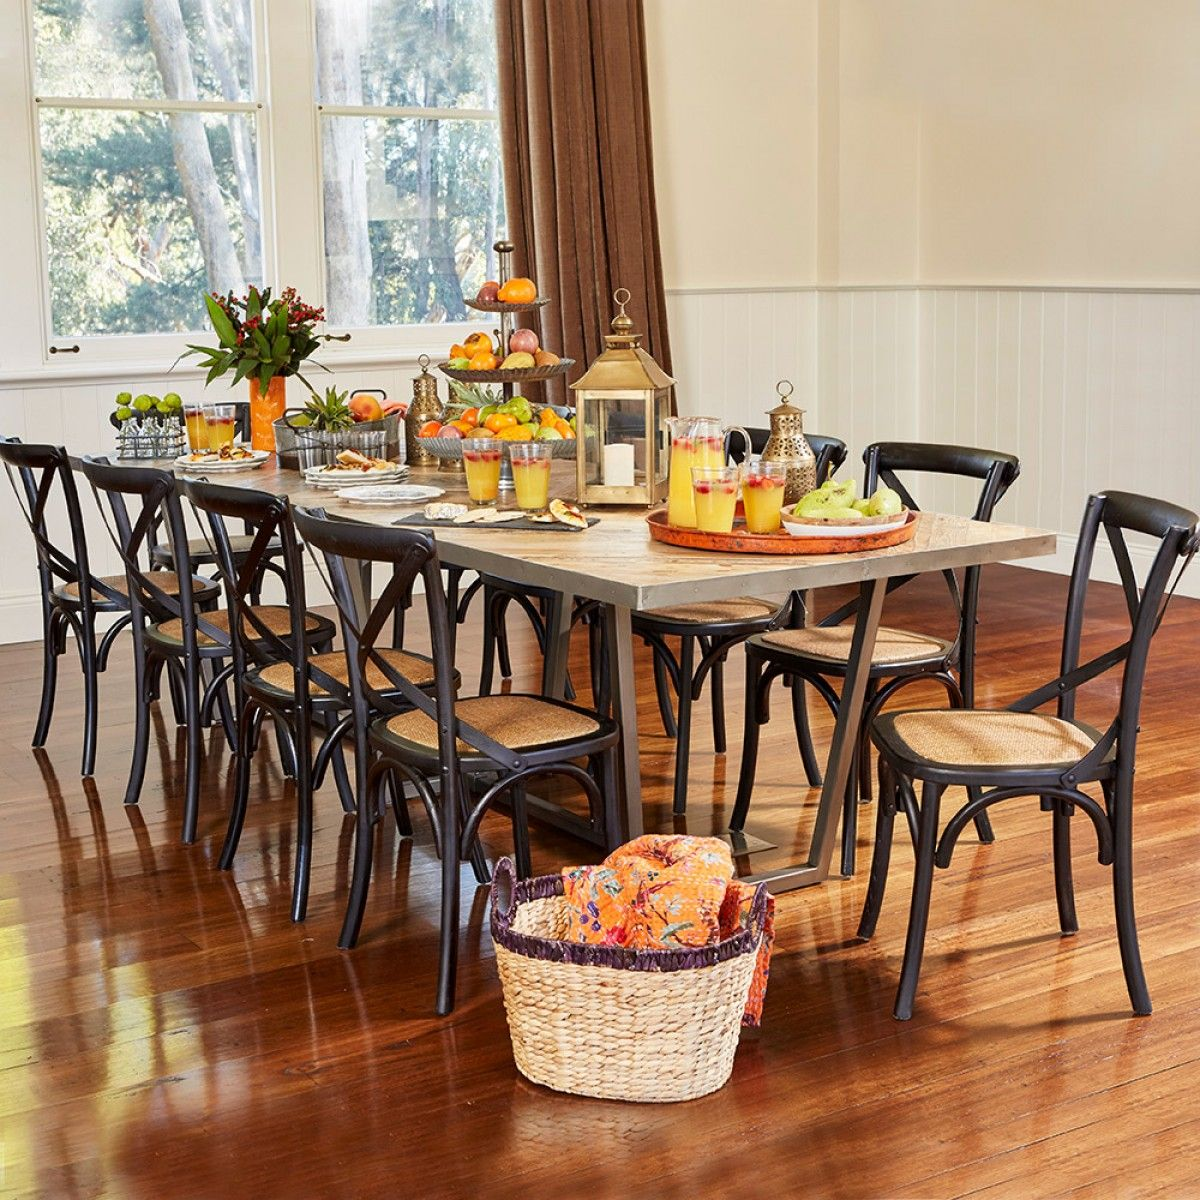 Ikan Dining Table 300X100  Iron Feet Recycled Pallet Pine Classy Clearance Dining Room Sets Design Inspiration